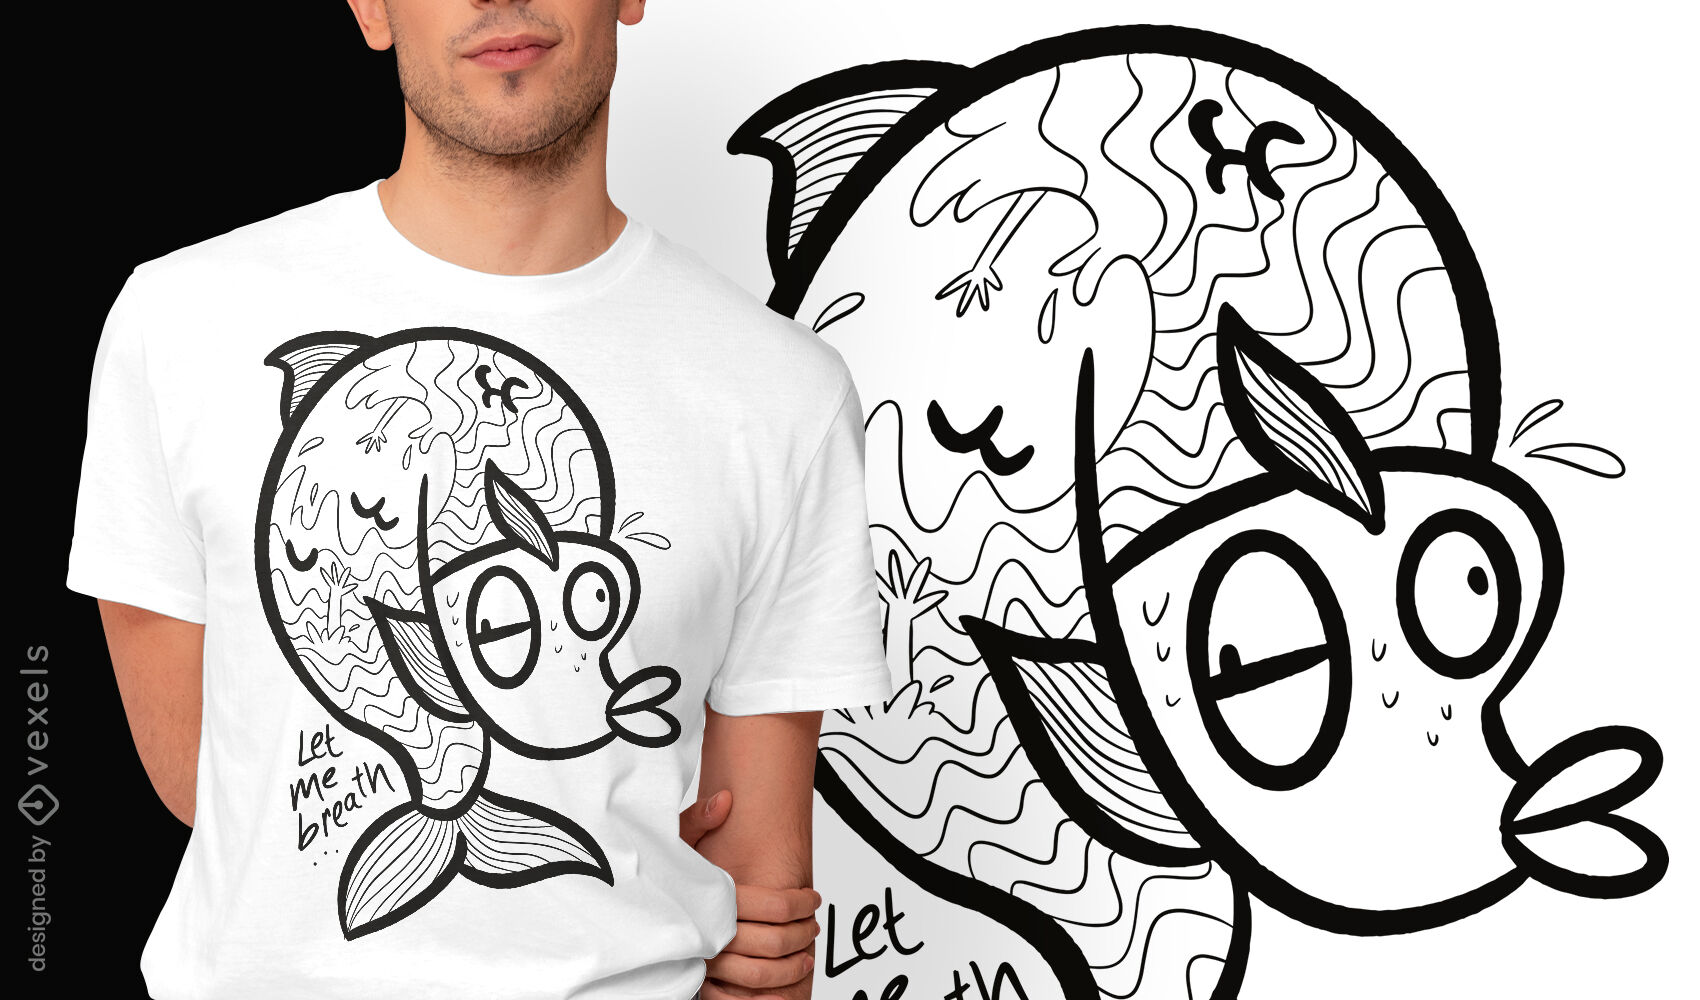 Drowning in fish t-shirt design